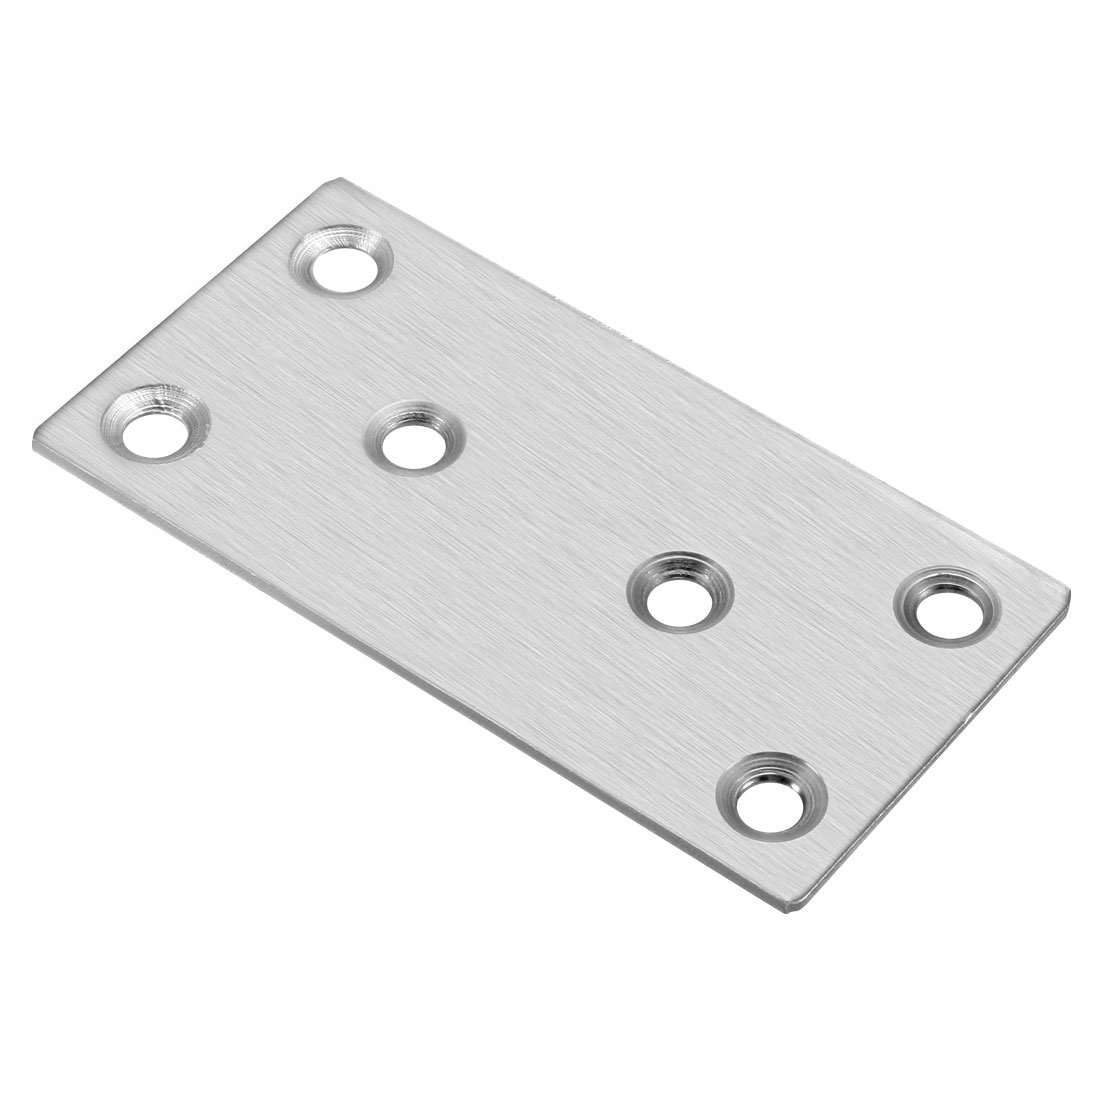 uxcell 1.5mm Thickness Metal Flat Straight Mending Plates Fixing Corner Brace 10pcs SYNCE005812